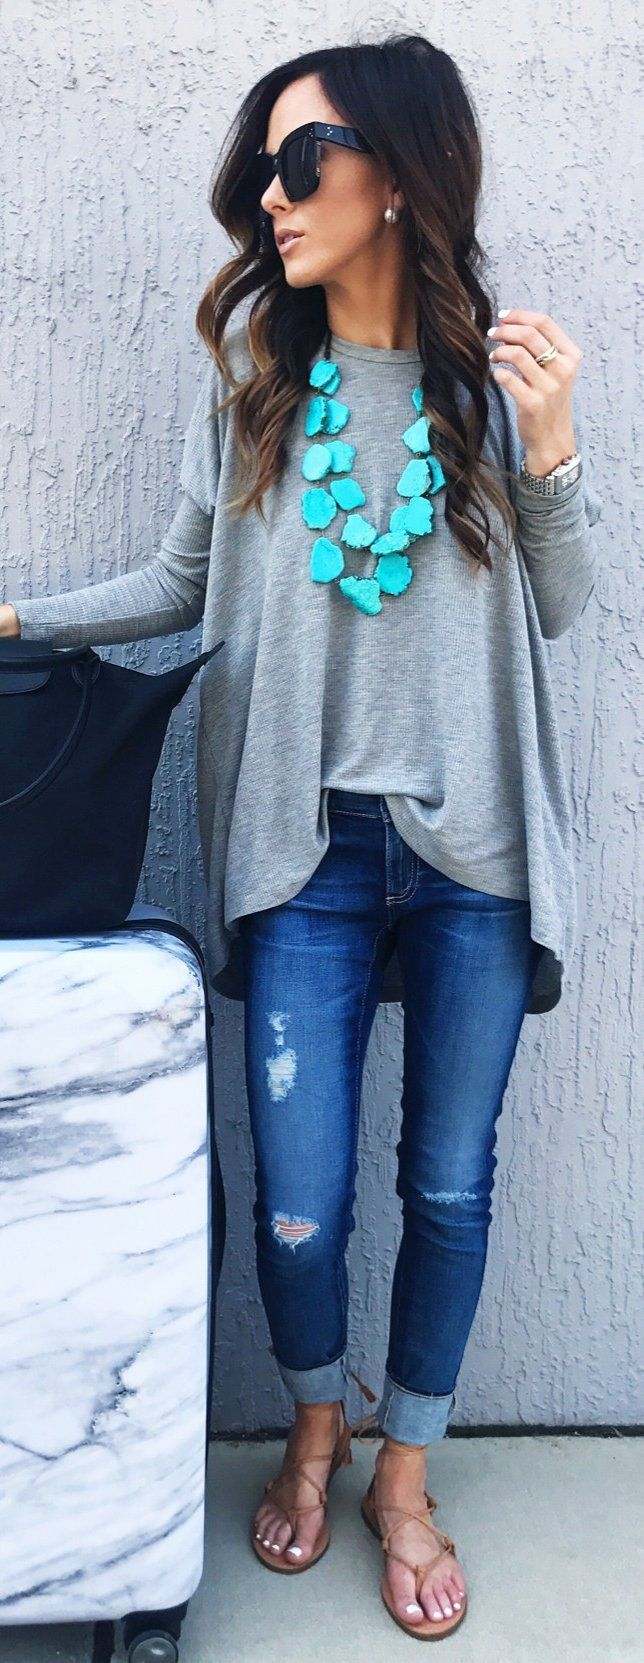 Best 25+ Outfit ideas ideas on Pinterest | Outfits, Cute spring ...